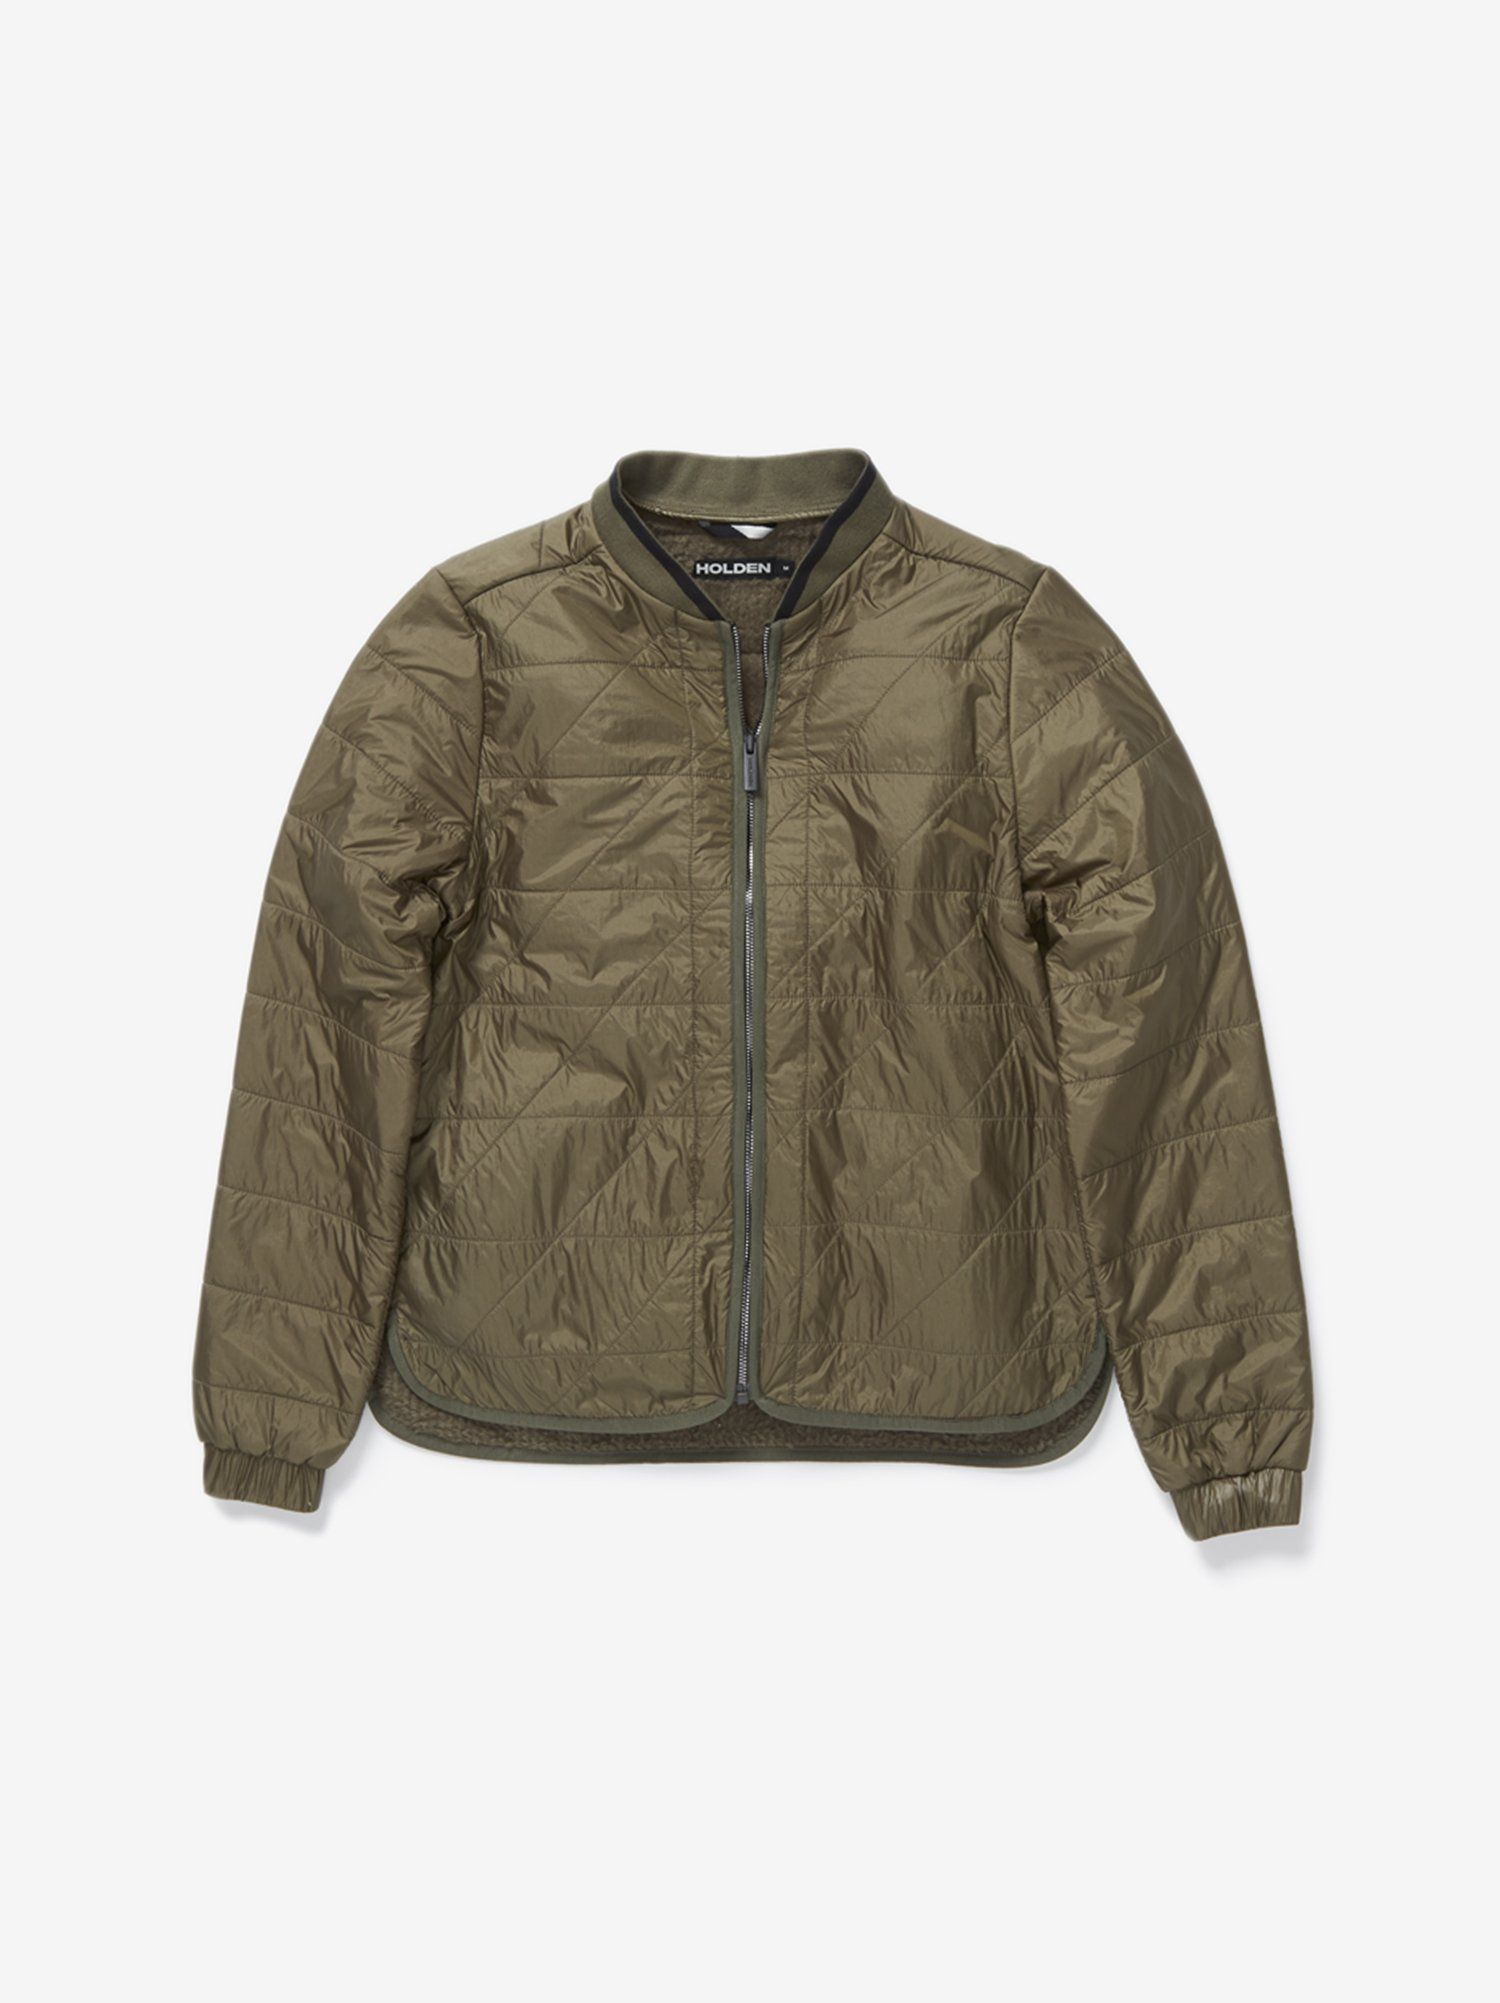 Made With Polartec Alpha And Alpha Direct Insulation This Beautifully Quilted Bomber Liner Jacket Is Designed Womens Bomber Holden Outerwear Quilted Bomber [ 2003 x 1500 Pixel ]